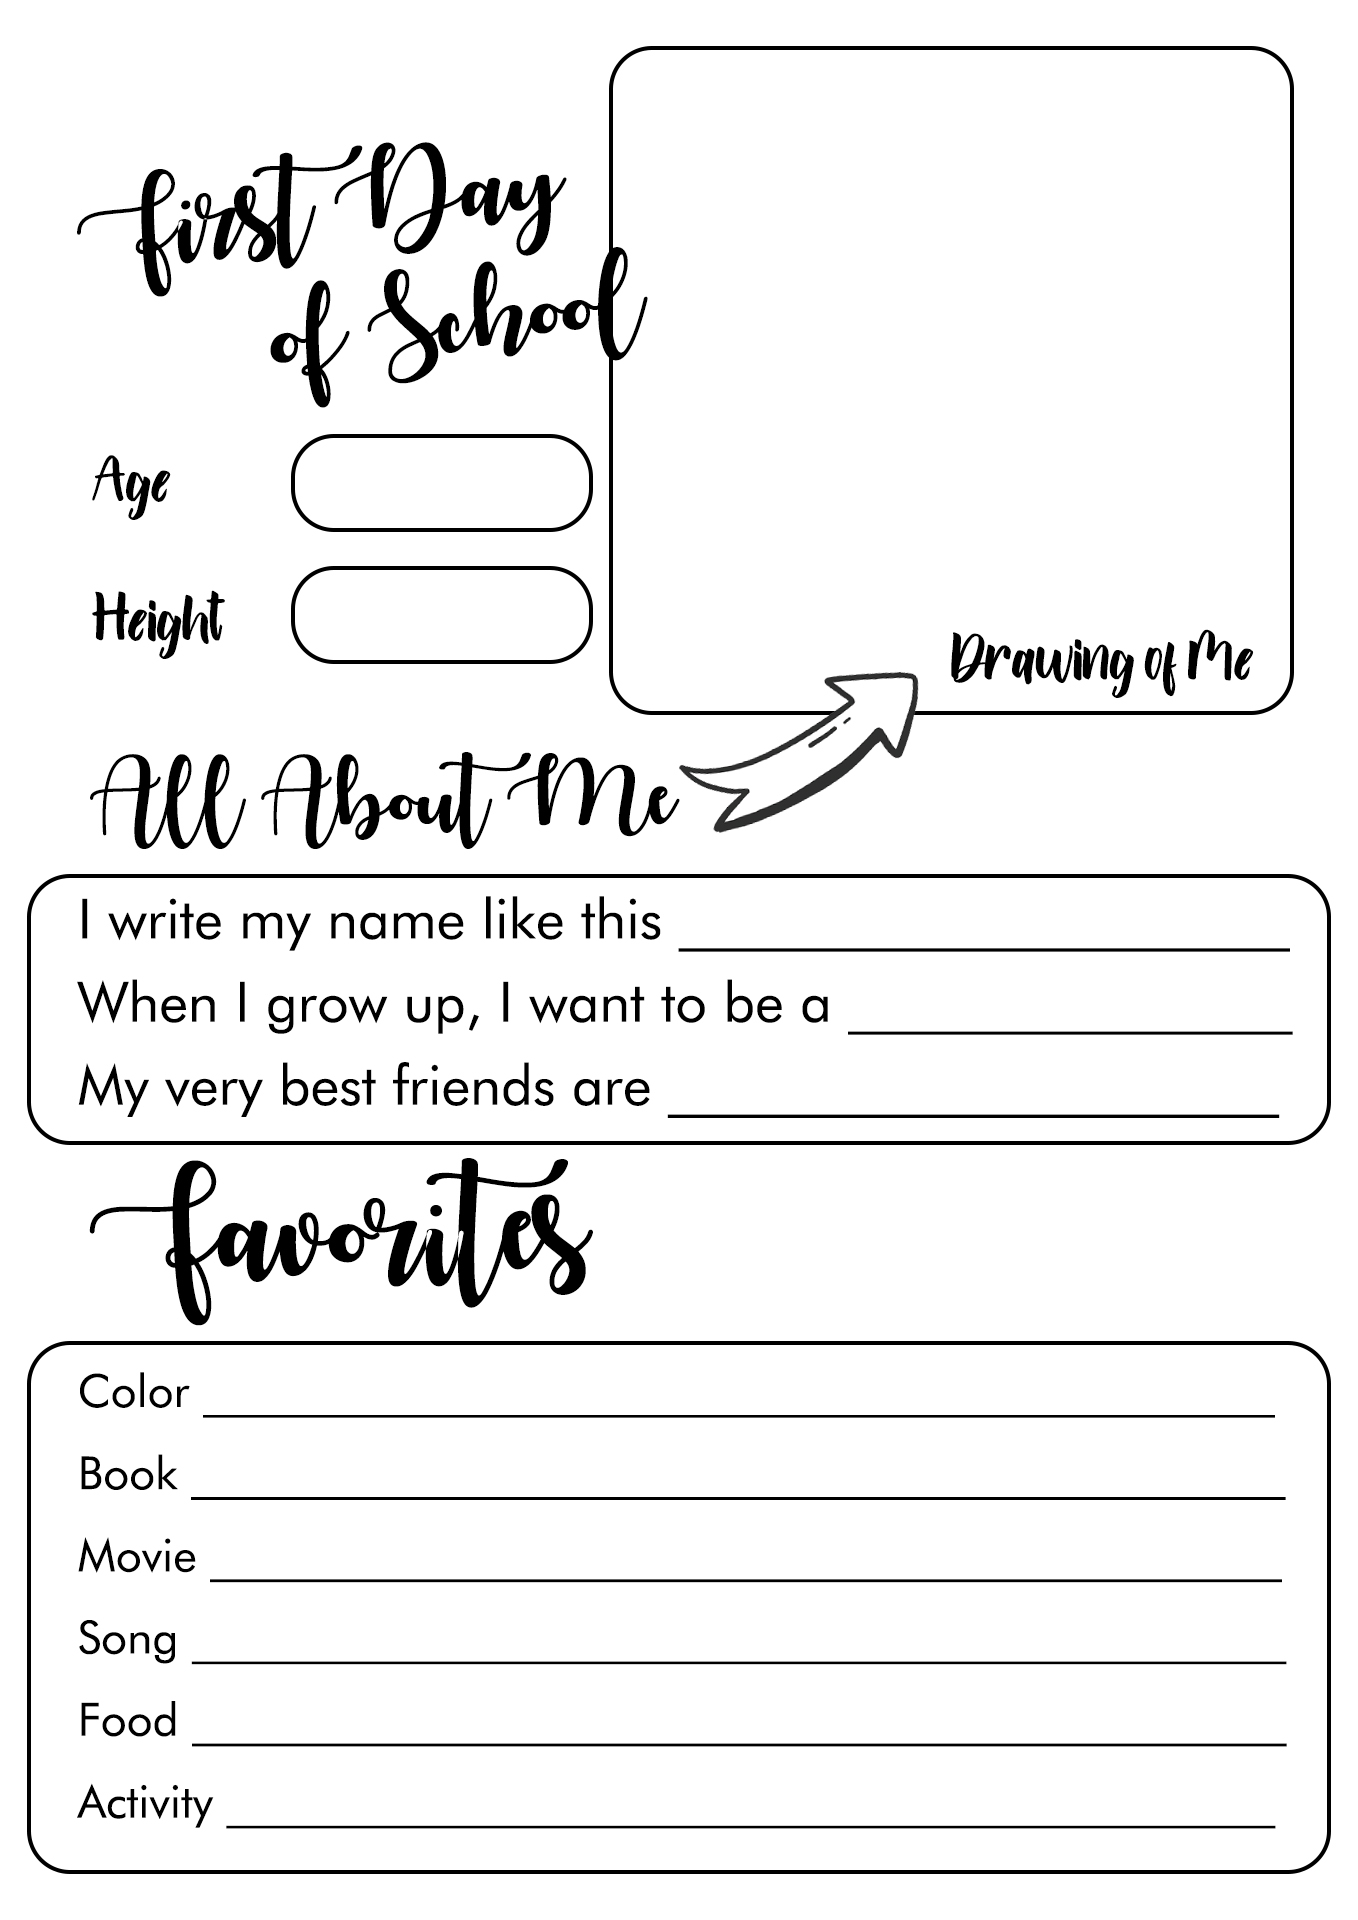 8 Best Images of My First Day Of School Preschool